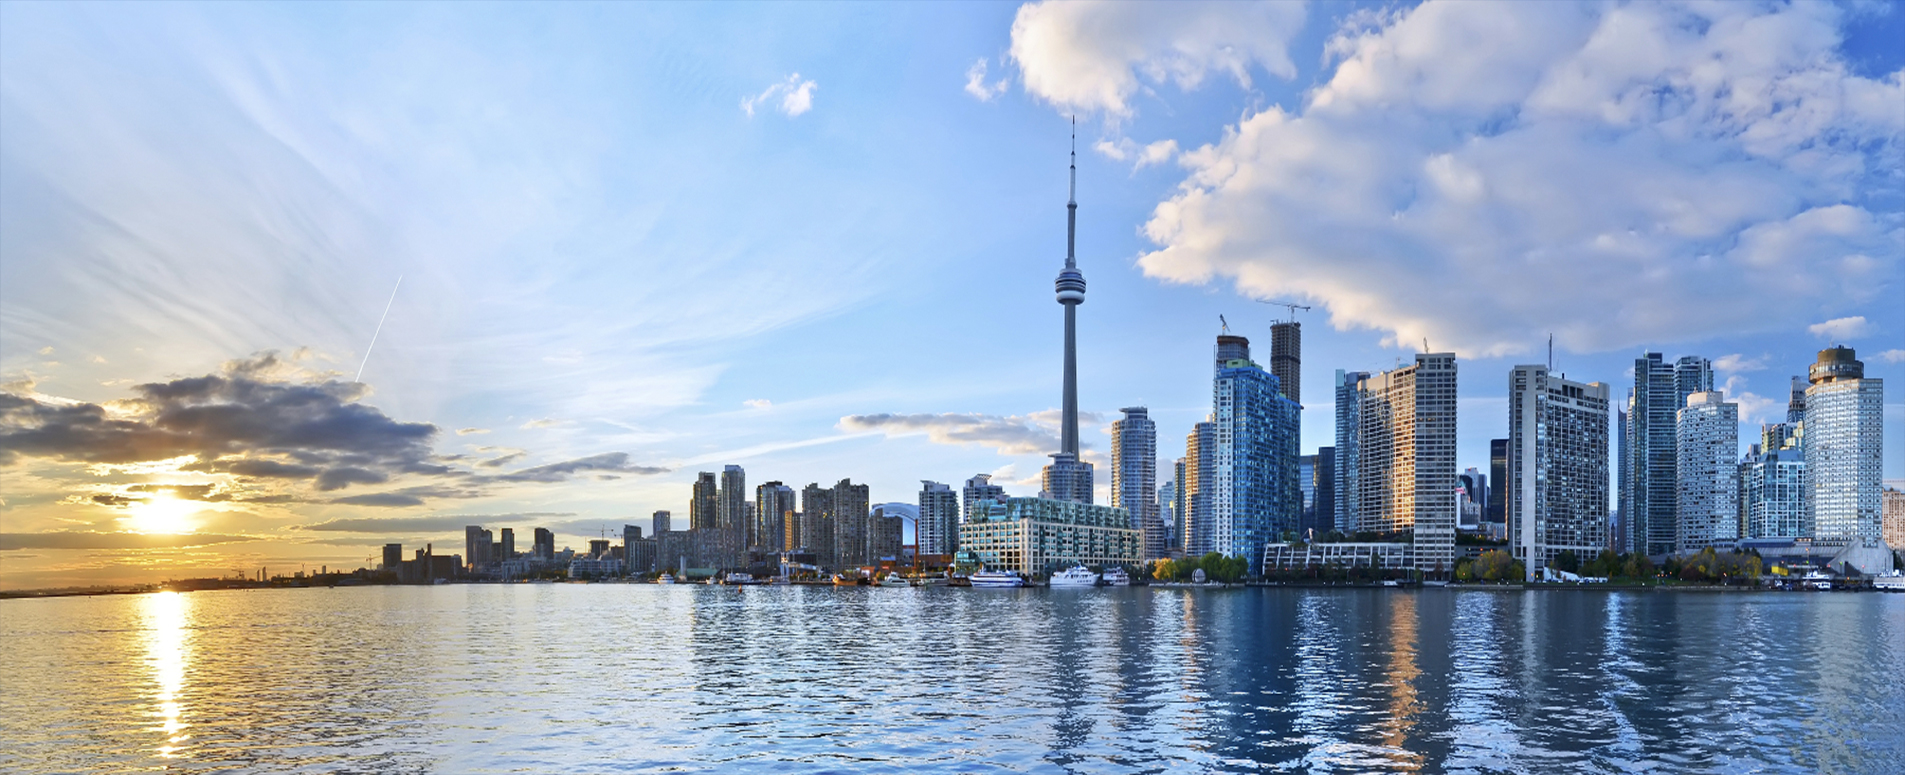 Canada surpasses 70,000 Express Entry invitations this year